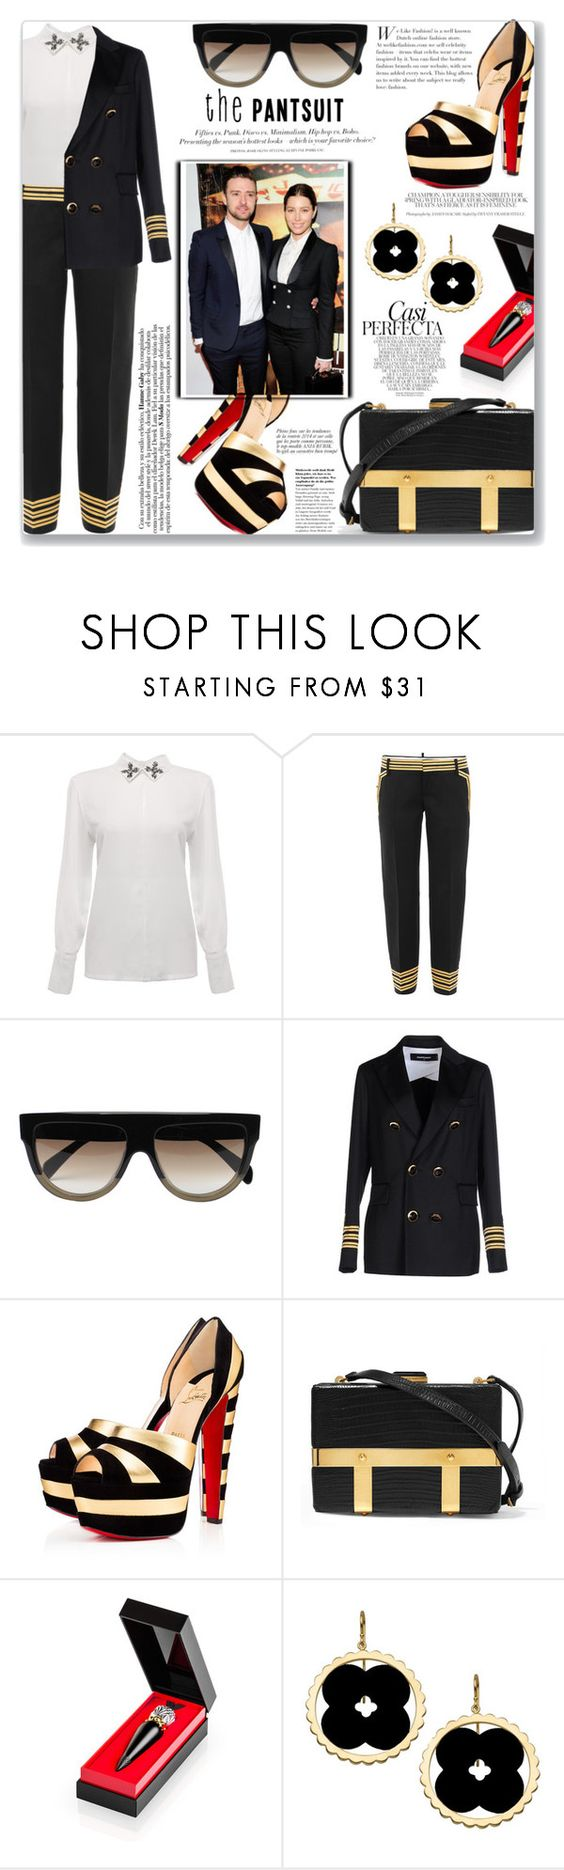 """Cockpit"" by mood-chic ❤ liked on Polyvore featuring Dsquared2, CÉLINE, Christian Louboutin, Britney Spears, Alexander McQueen, Asha by ADM, H&M, Whiteley, Anja and thepantsuit"